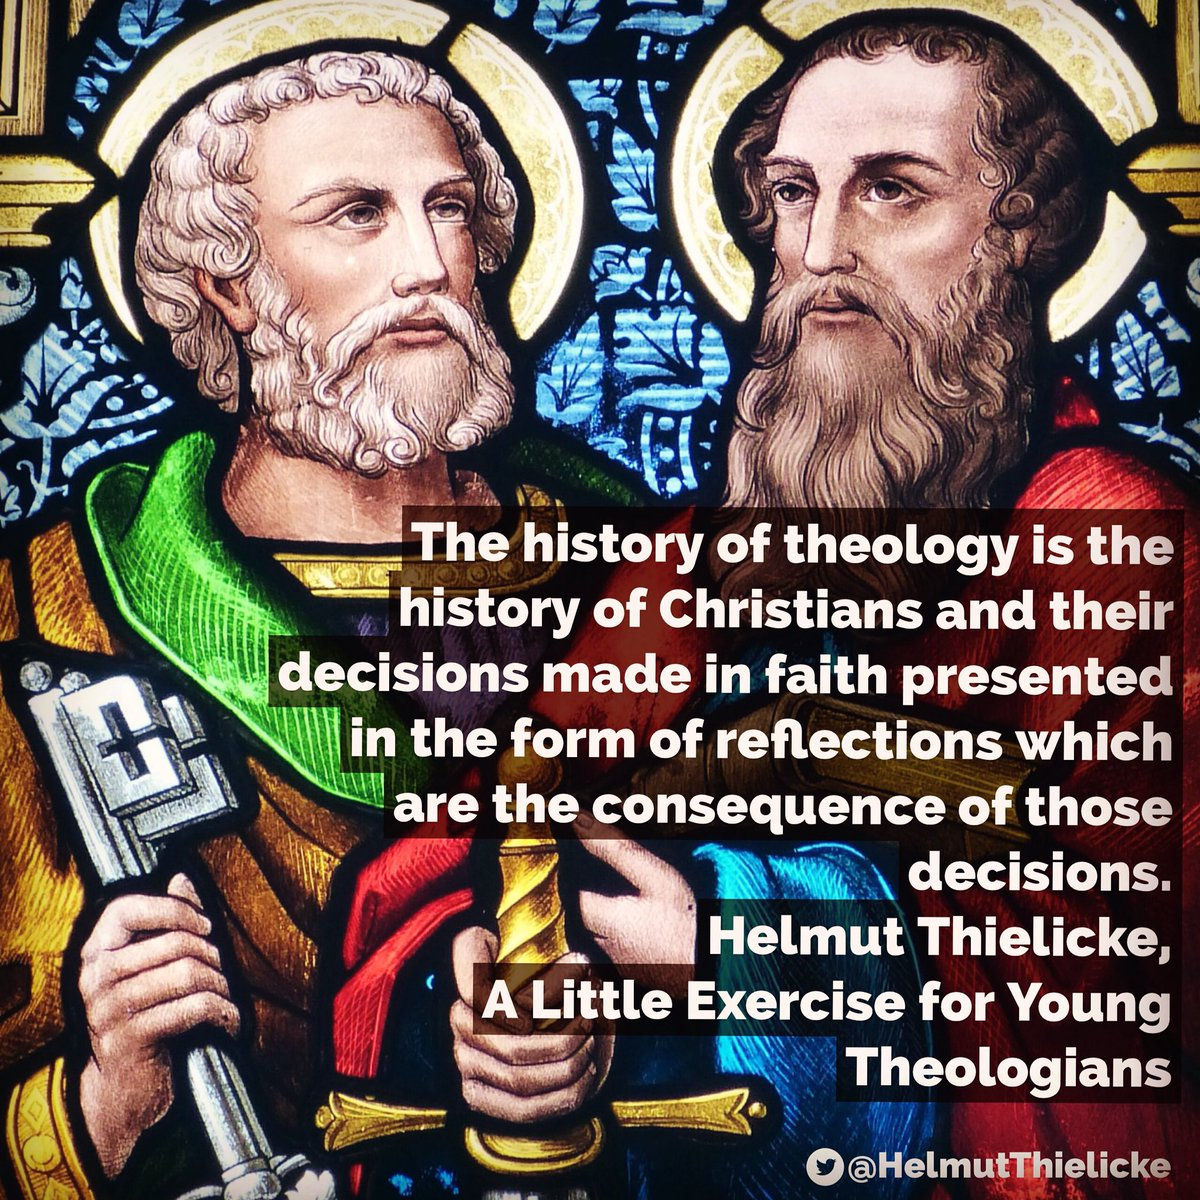 Helmut Thielicke On Twitter Helmutthielicke Helmutthielickequote Theology Christian Faith Christianhistory Alittleexerciseforyoungtheologians